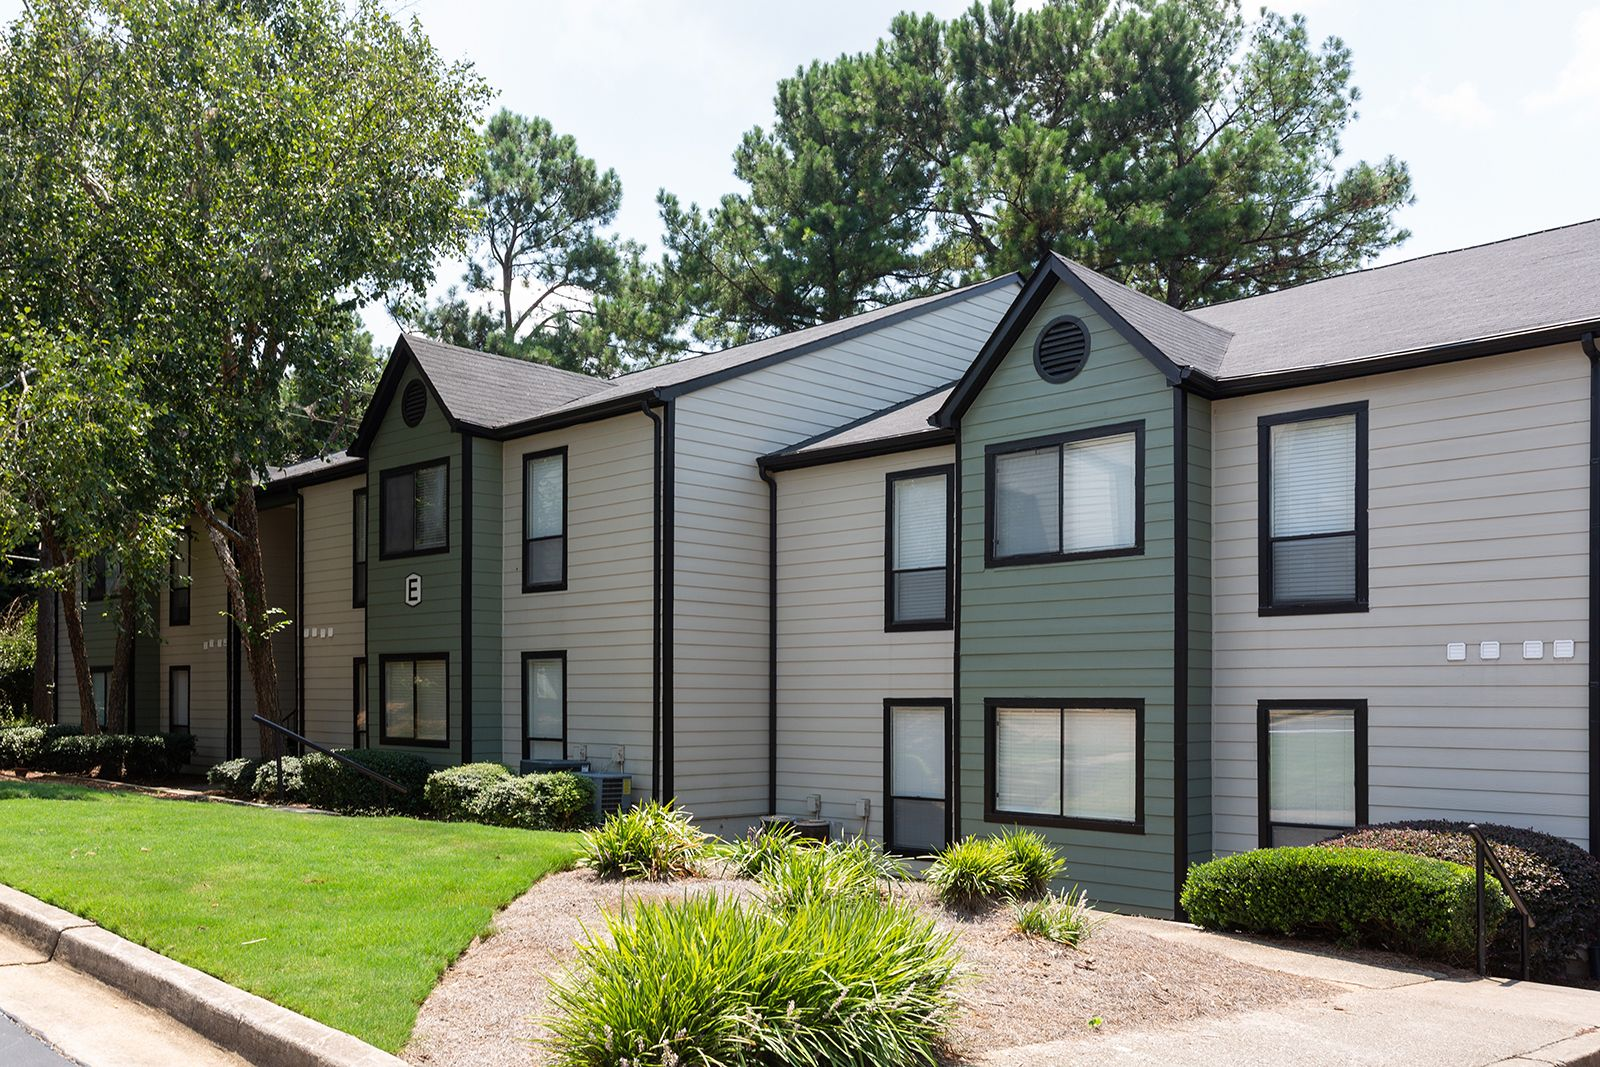 Renew Peachtree City Apartments Is Nestled Amongst The Trees Along 91 Miles Of Golf Cart Trails In The Prestigious Neig City Apartment Peachtree City Apartment